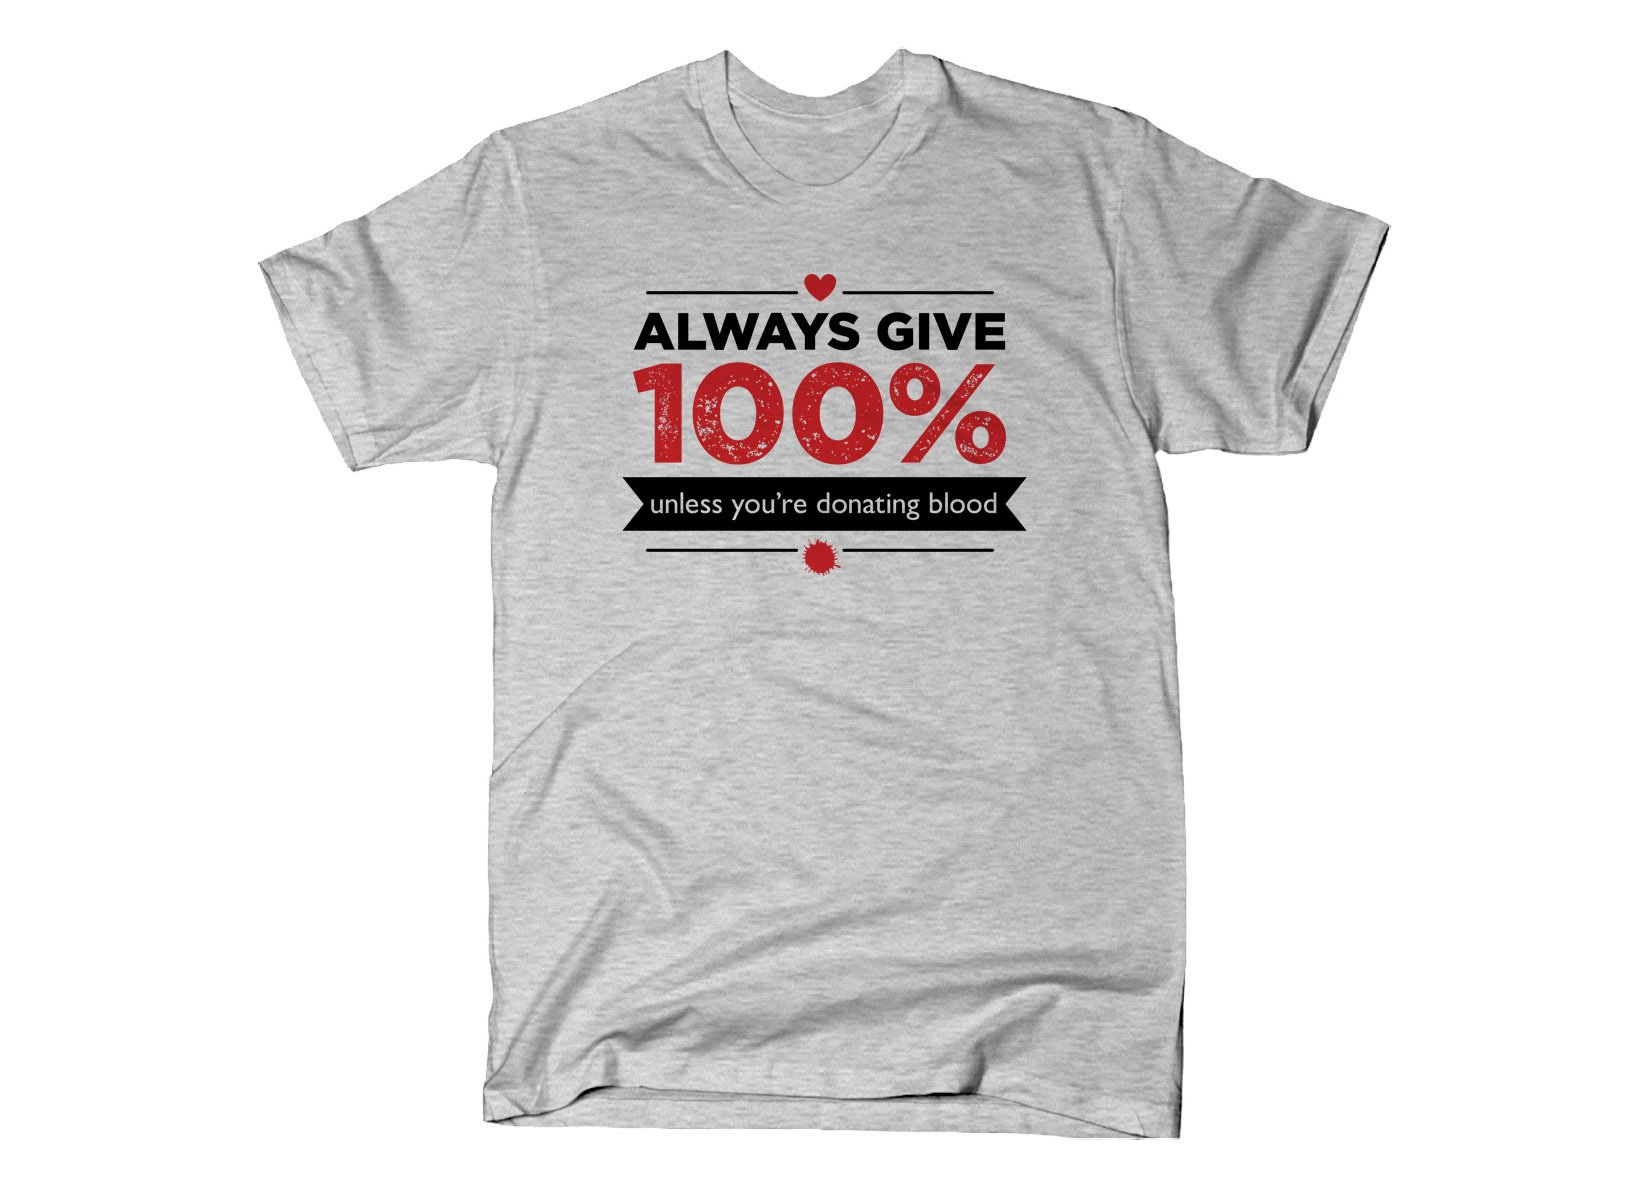 Always Give 100%, Unless You're Donating Blood on Mens T-Shirt